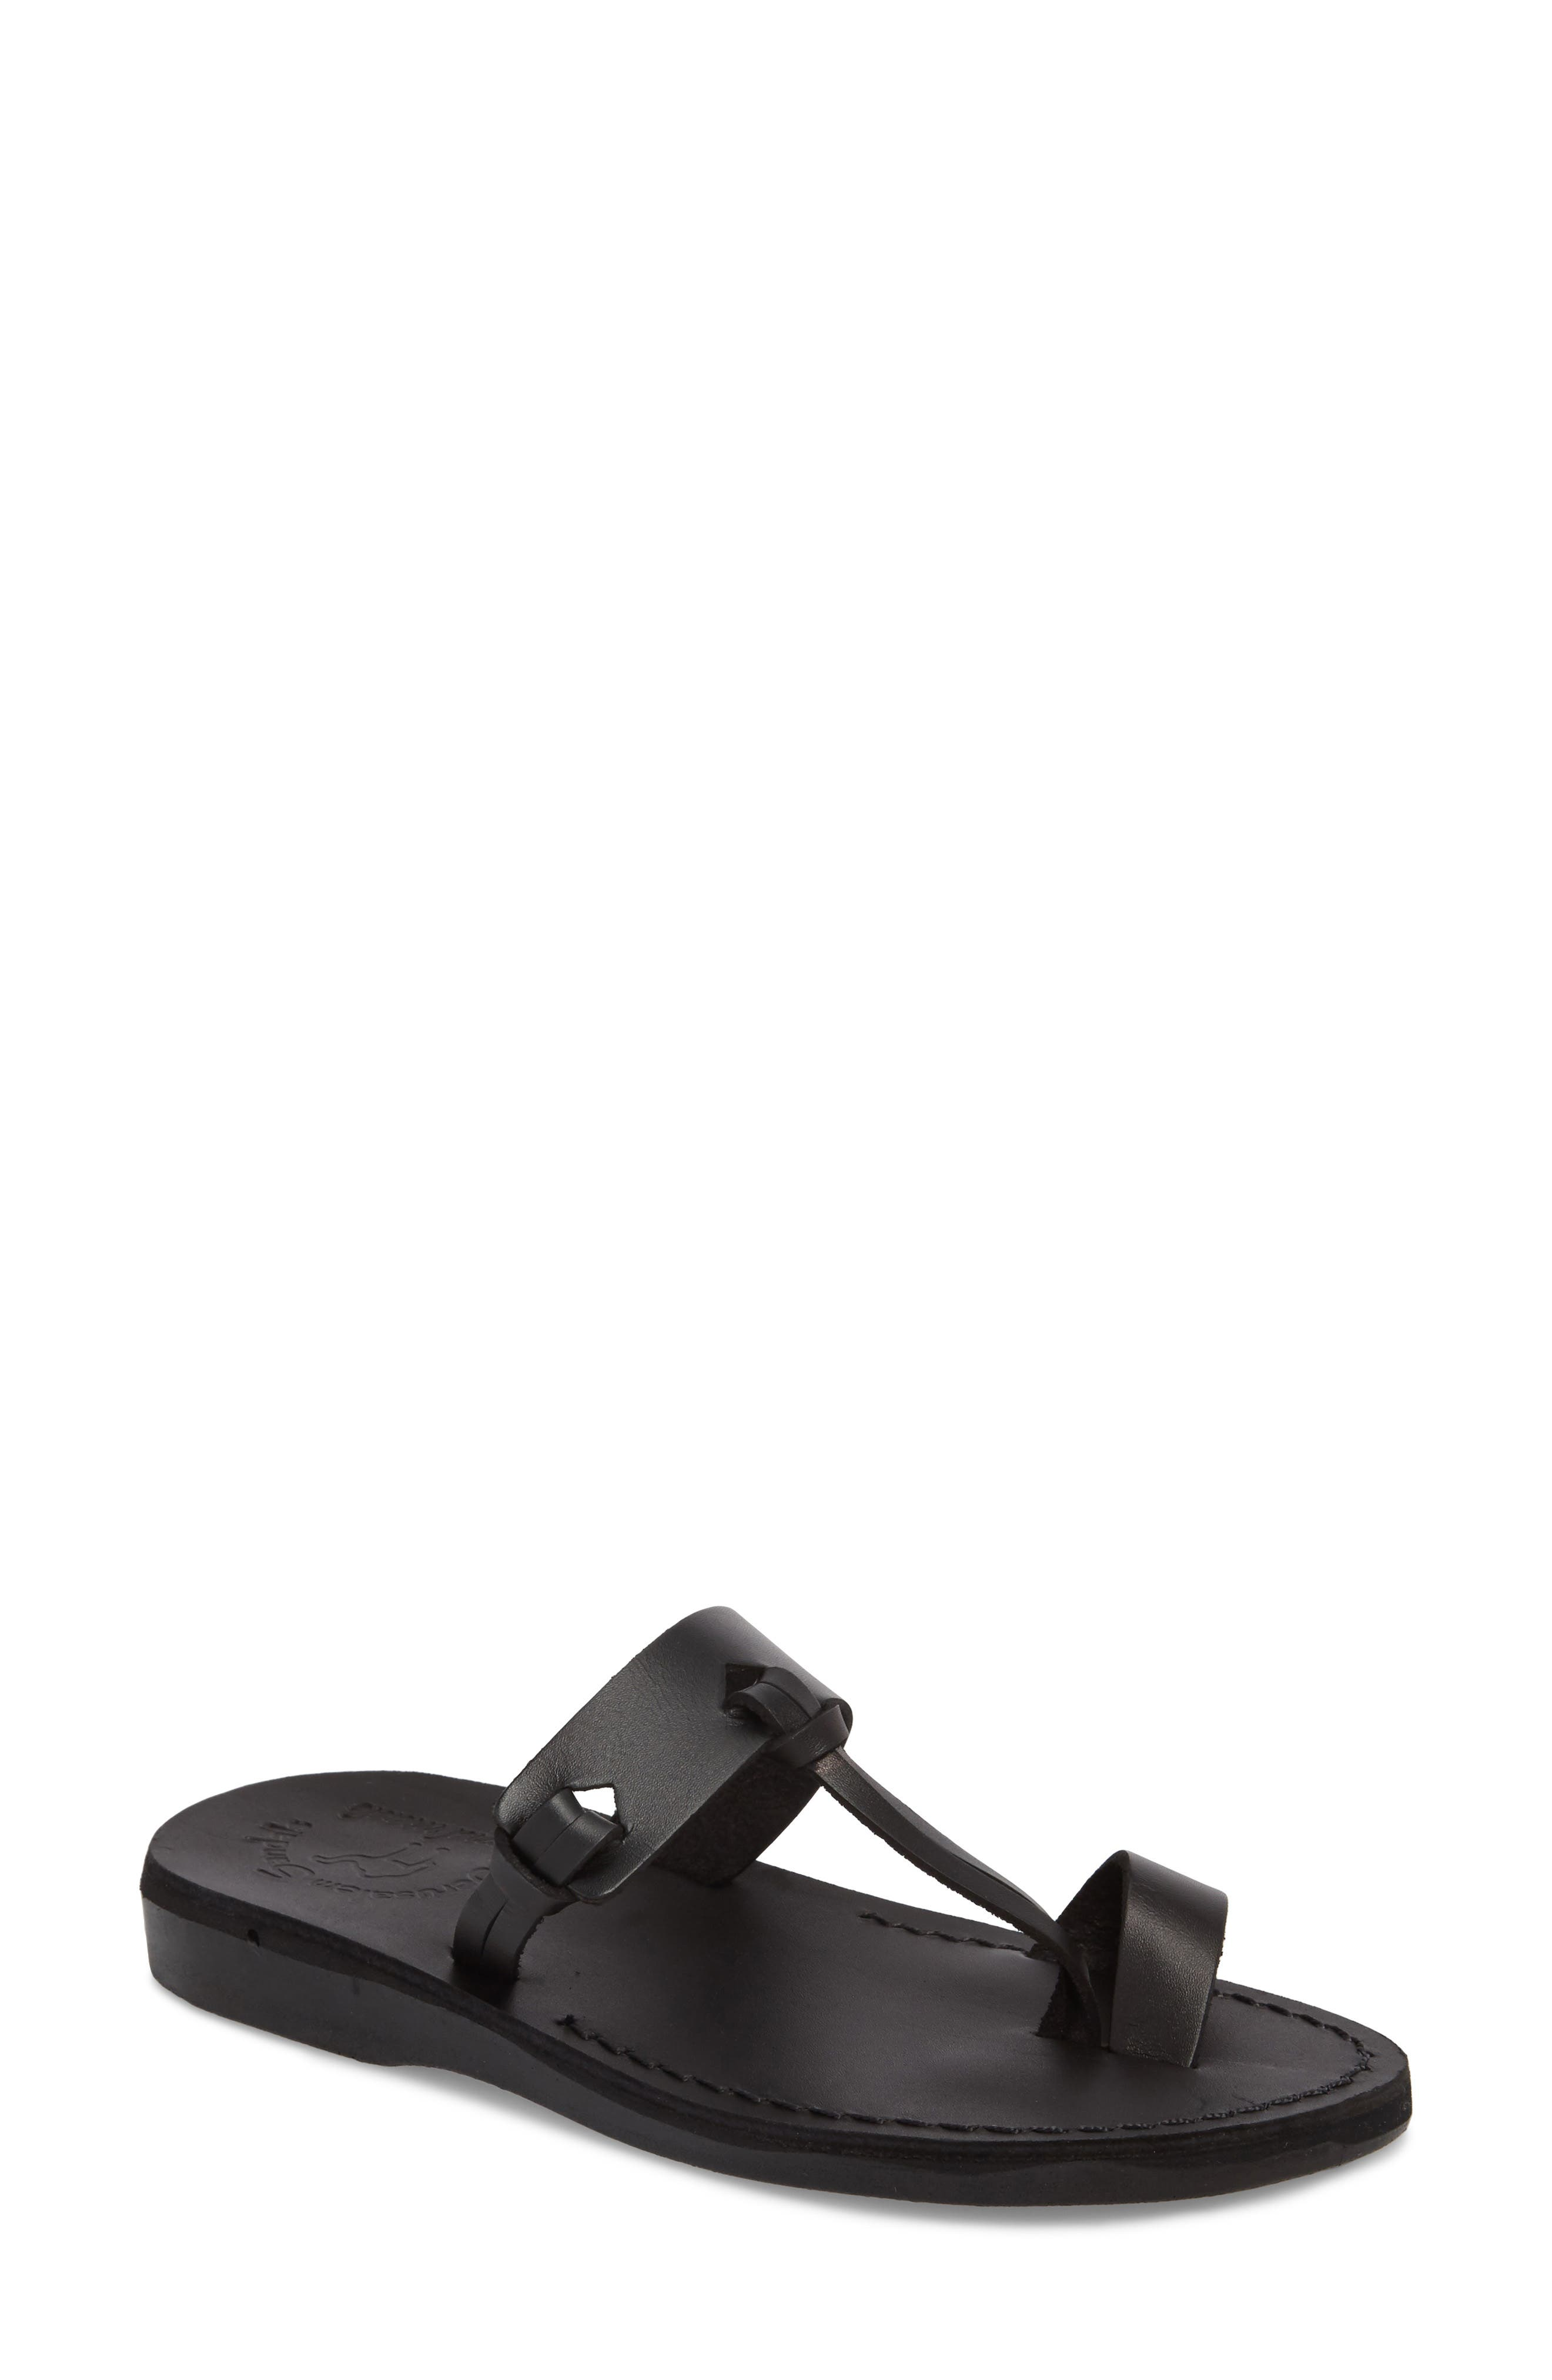 JERUSALEM SANDALS David Toe-Loop Sandal, Main, color, BLACK LEATHER